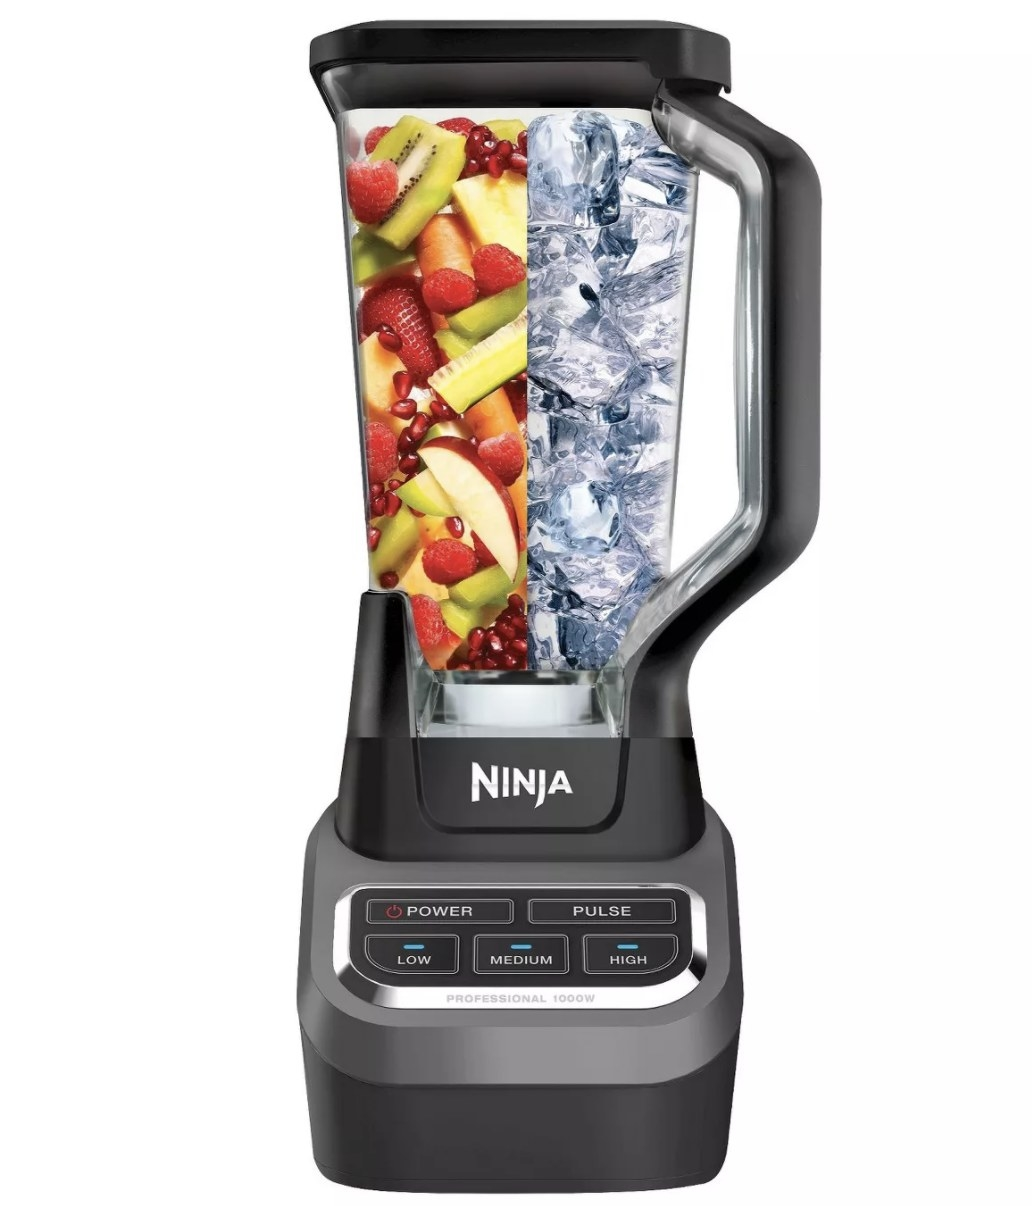 A blender with fruit and ice in it